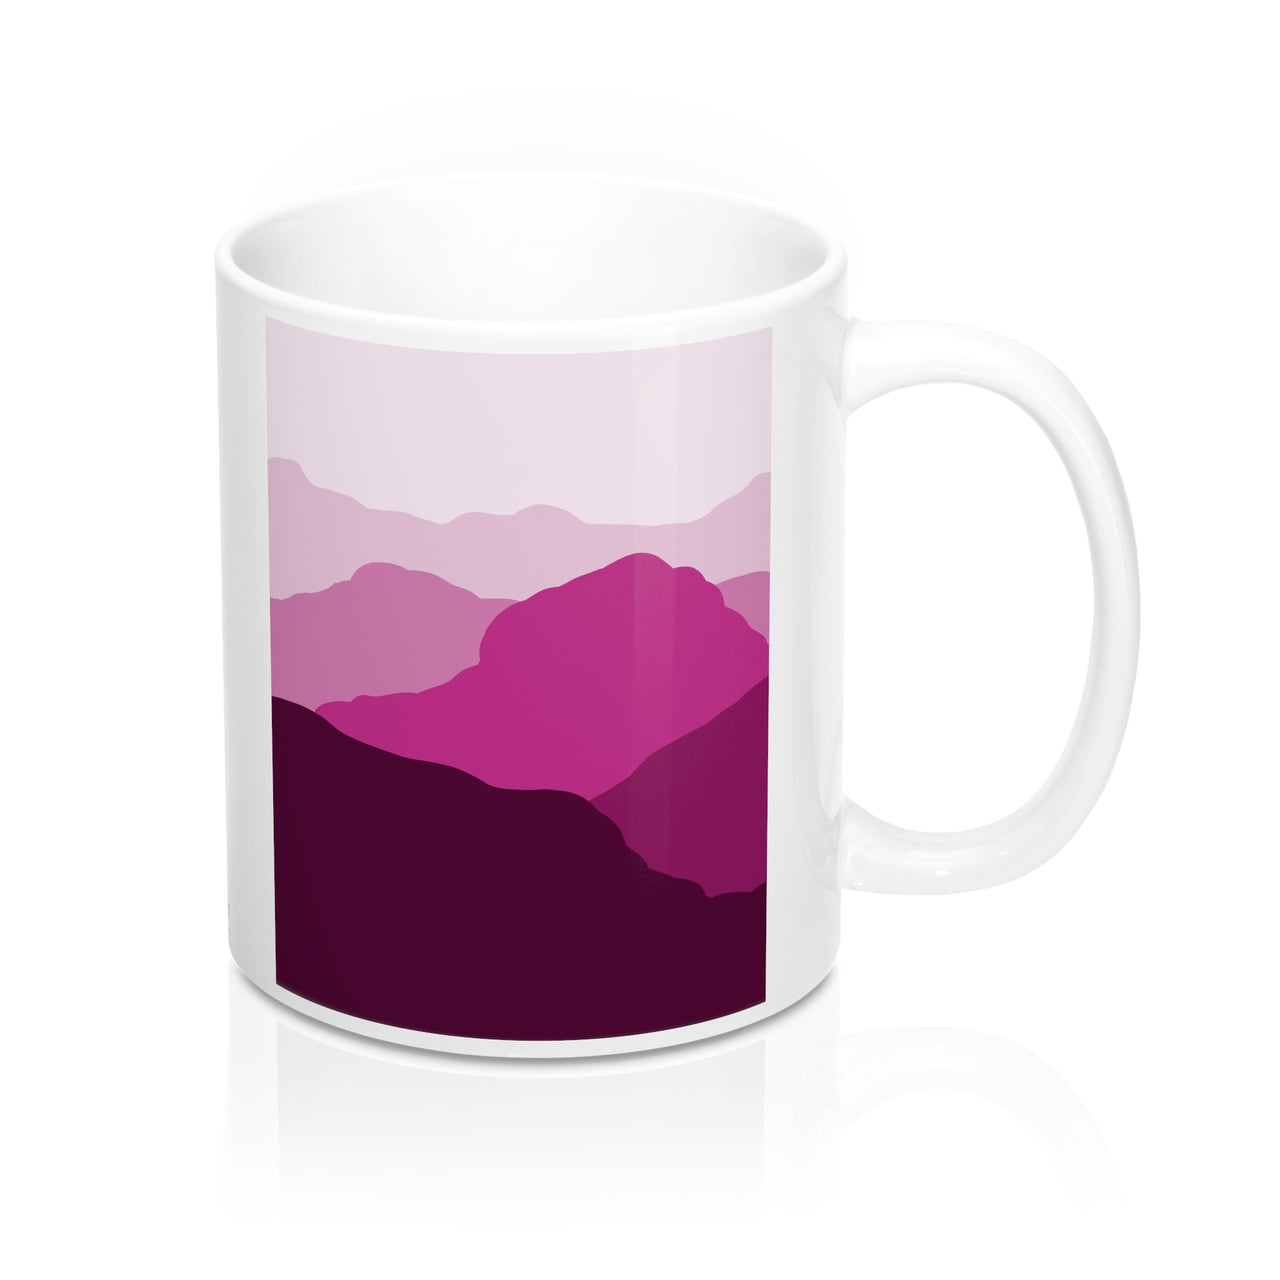 Mug - Red Mountain Scene